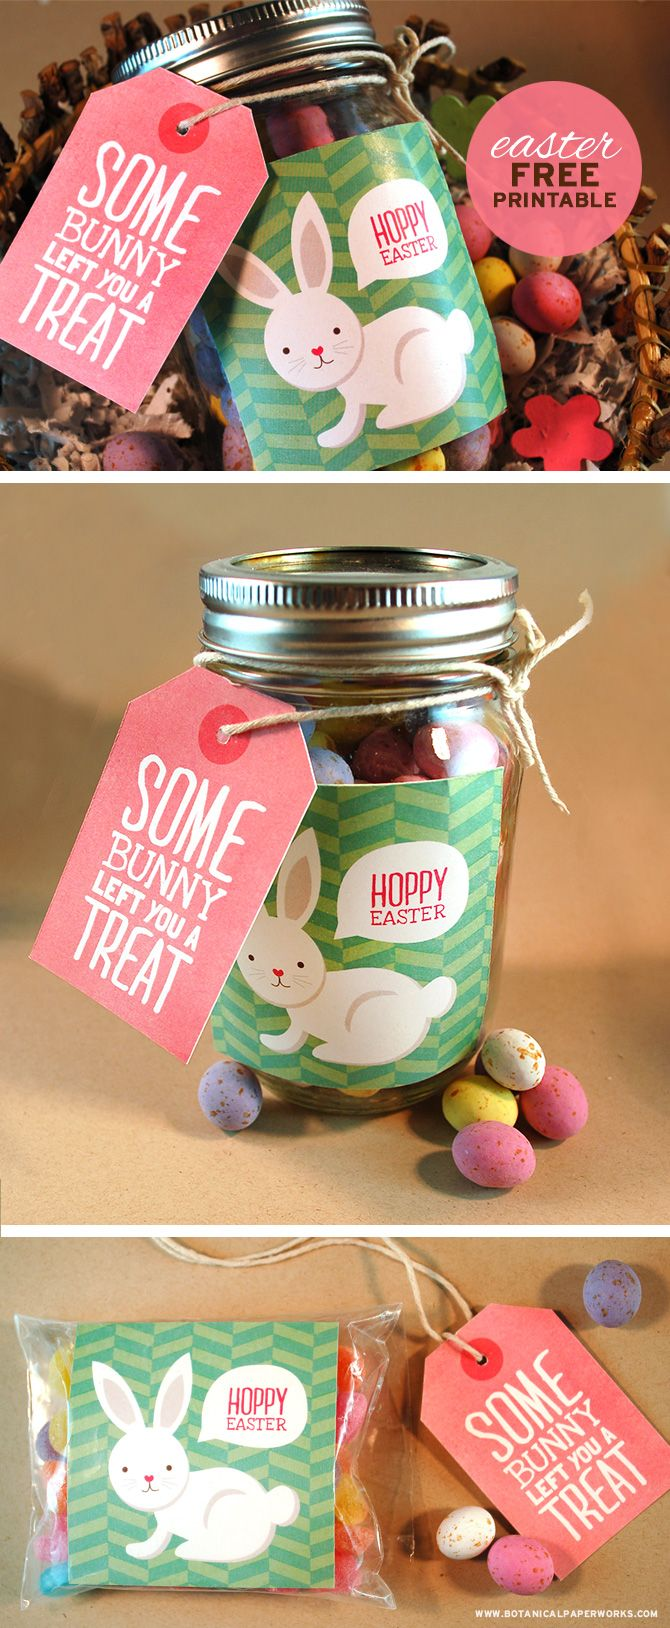 Best 25 easter gift ideas on pinterest bunny bags diy gift these adorable free printables are a great way to dress up your treat packages for friends diy easter gifts negle Gallery